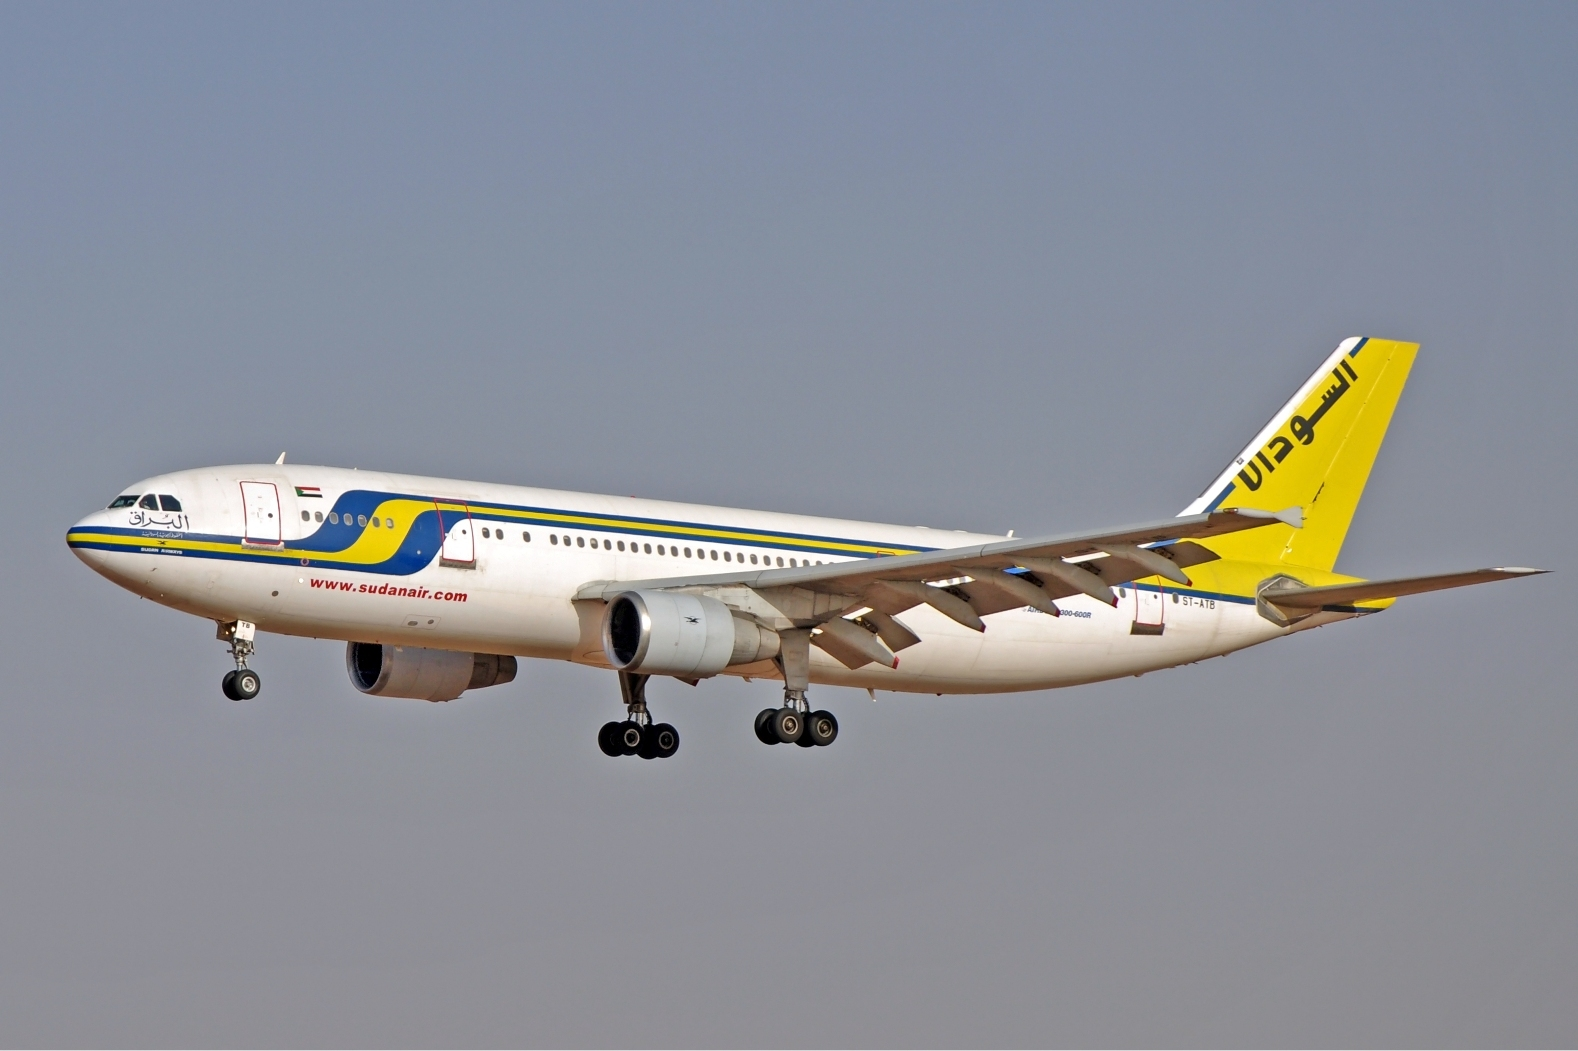 sudan_airways_airbus_a300_onyshchenko-1